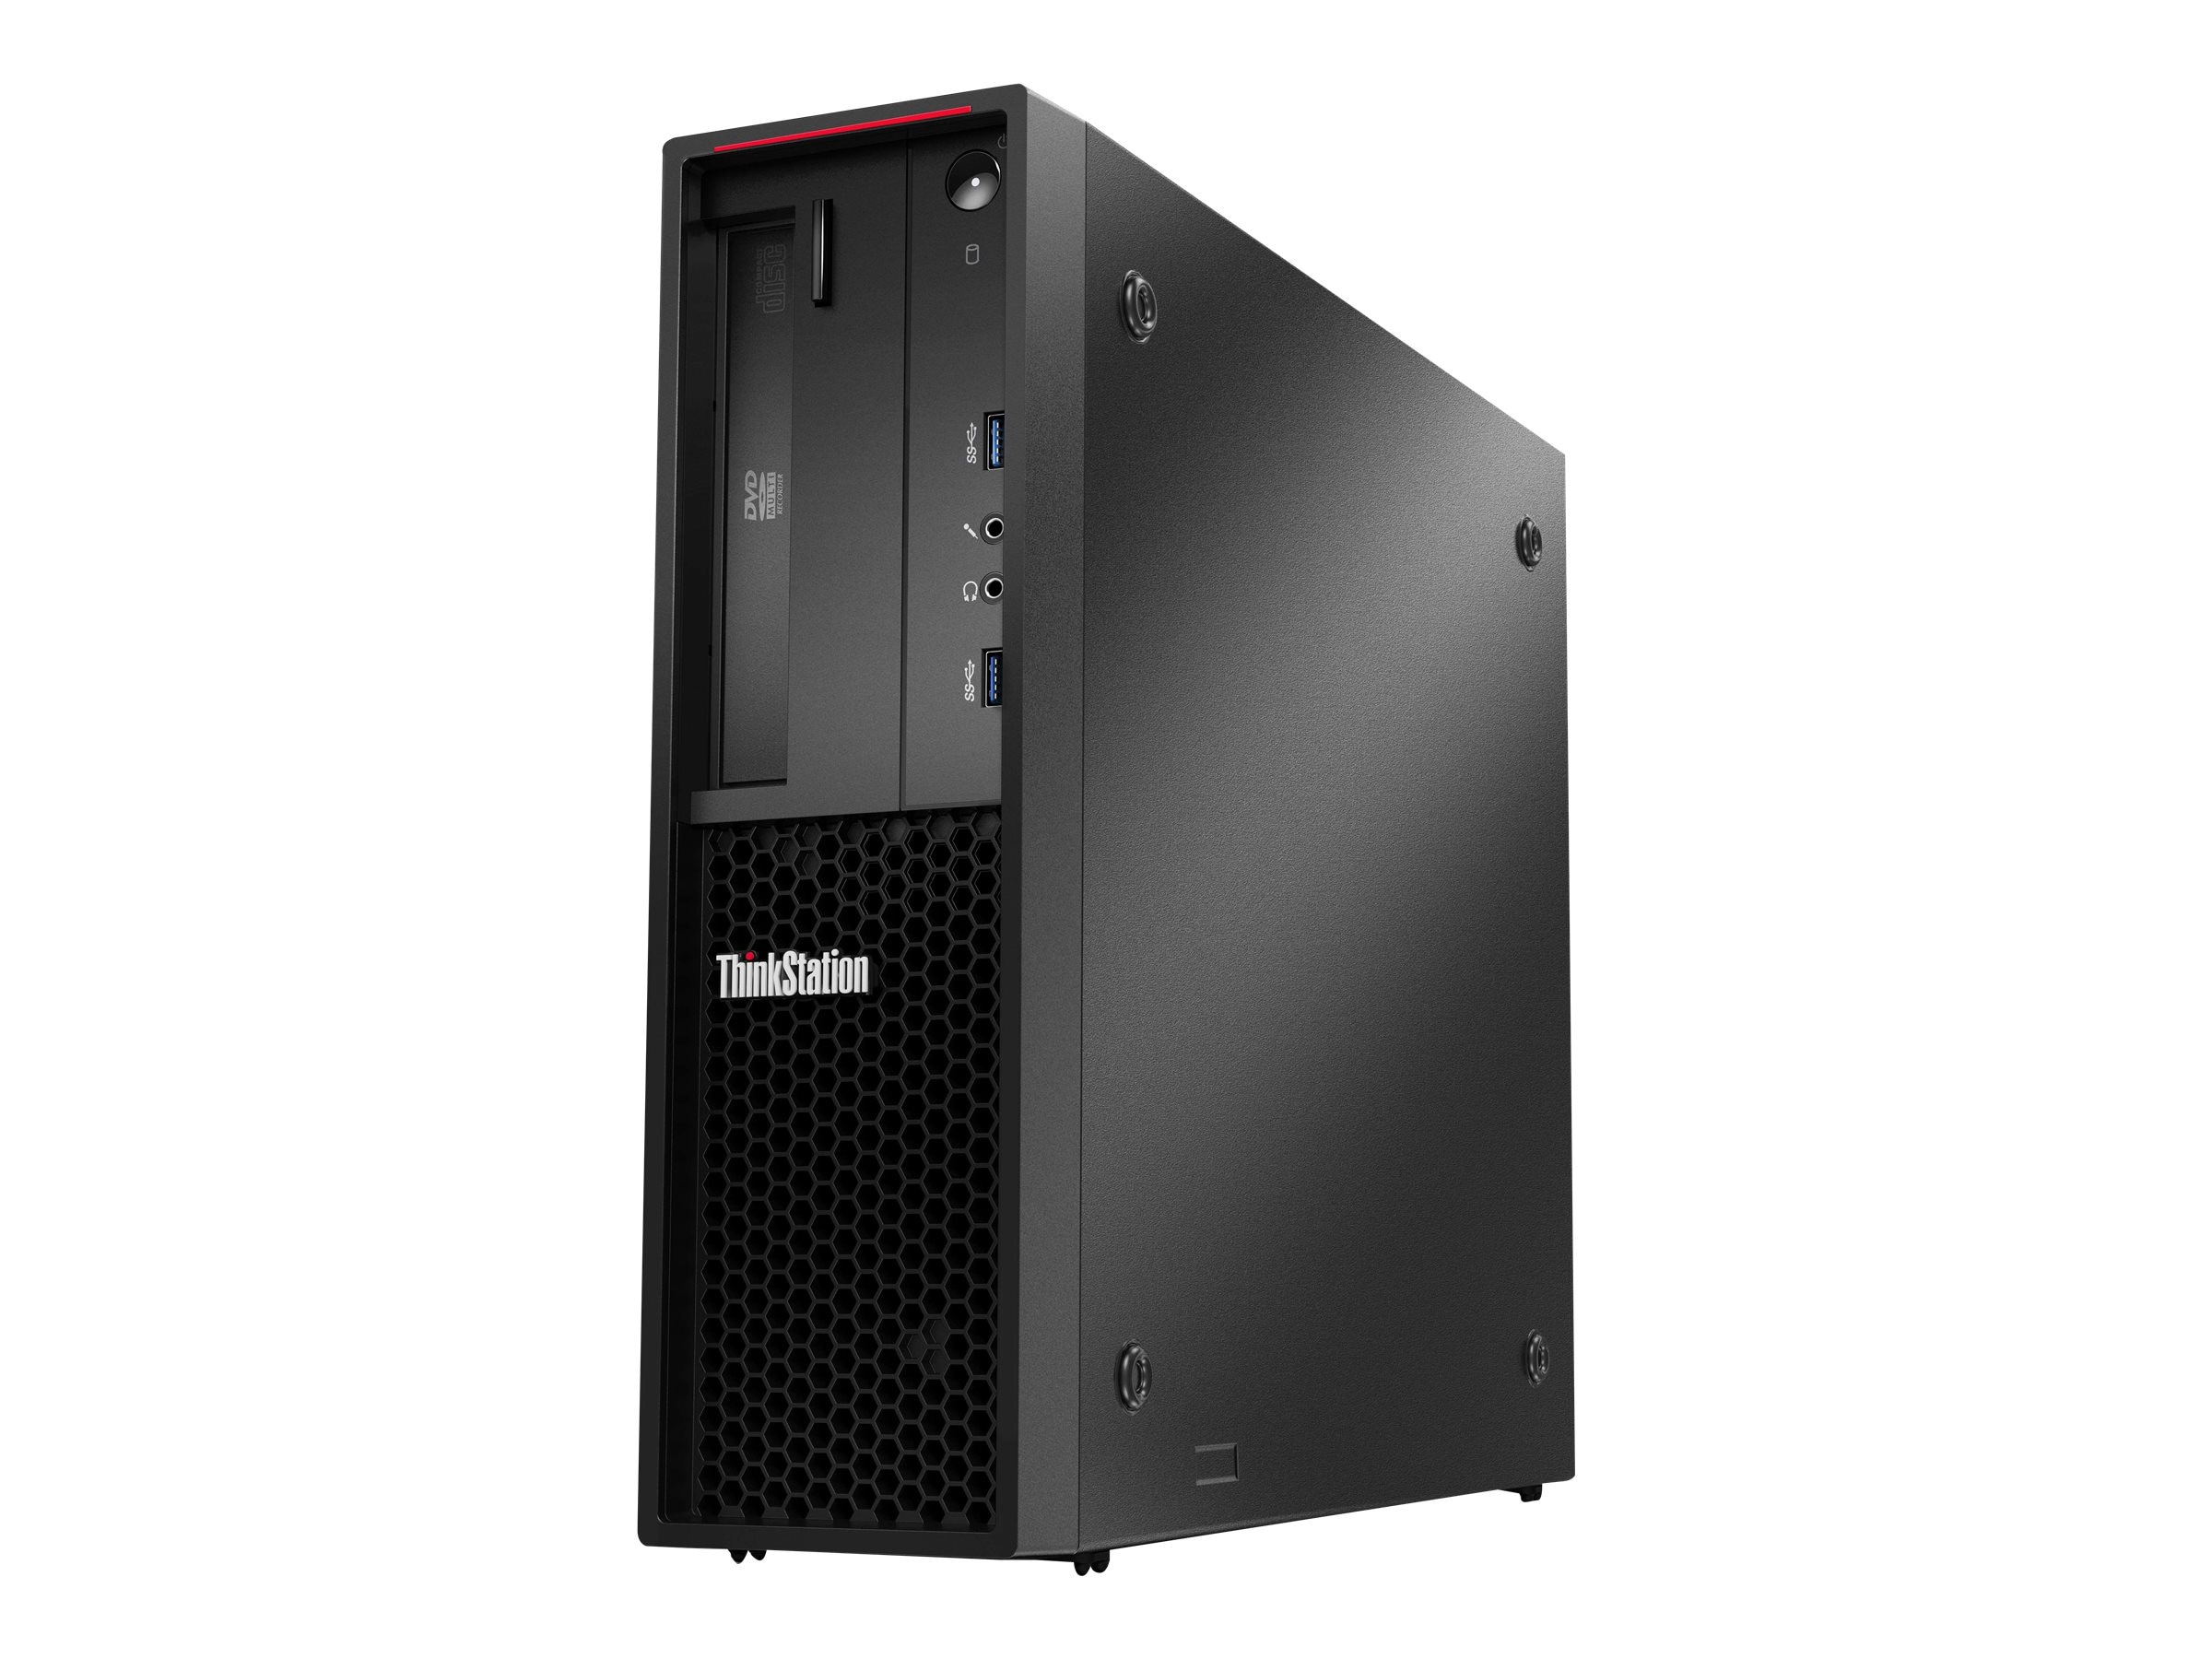 Lenovo TopSeller ThinkStation P310 3.5GHz Xeon Microsoft Windows 7 Professional 64-bit Edition   Windows 10 Pro